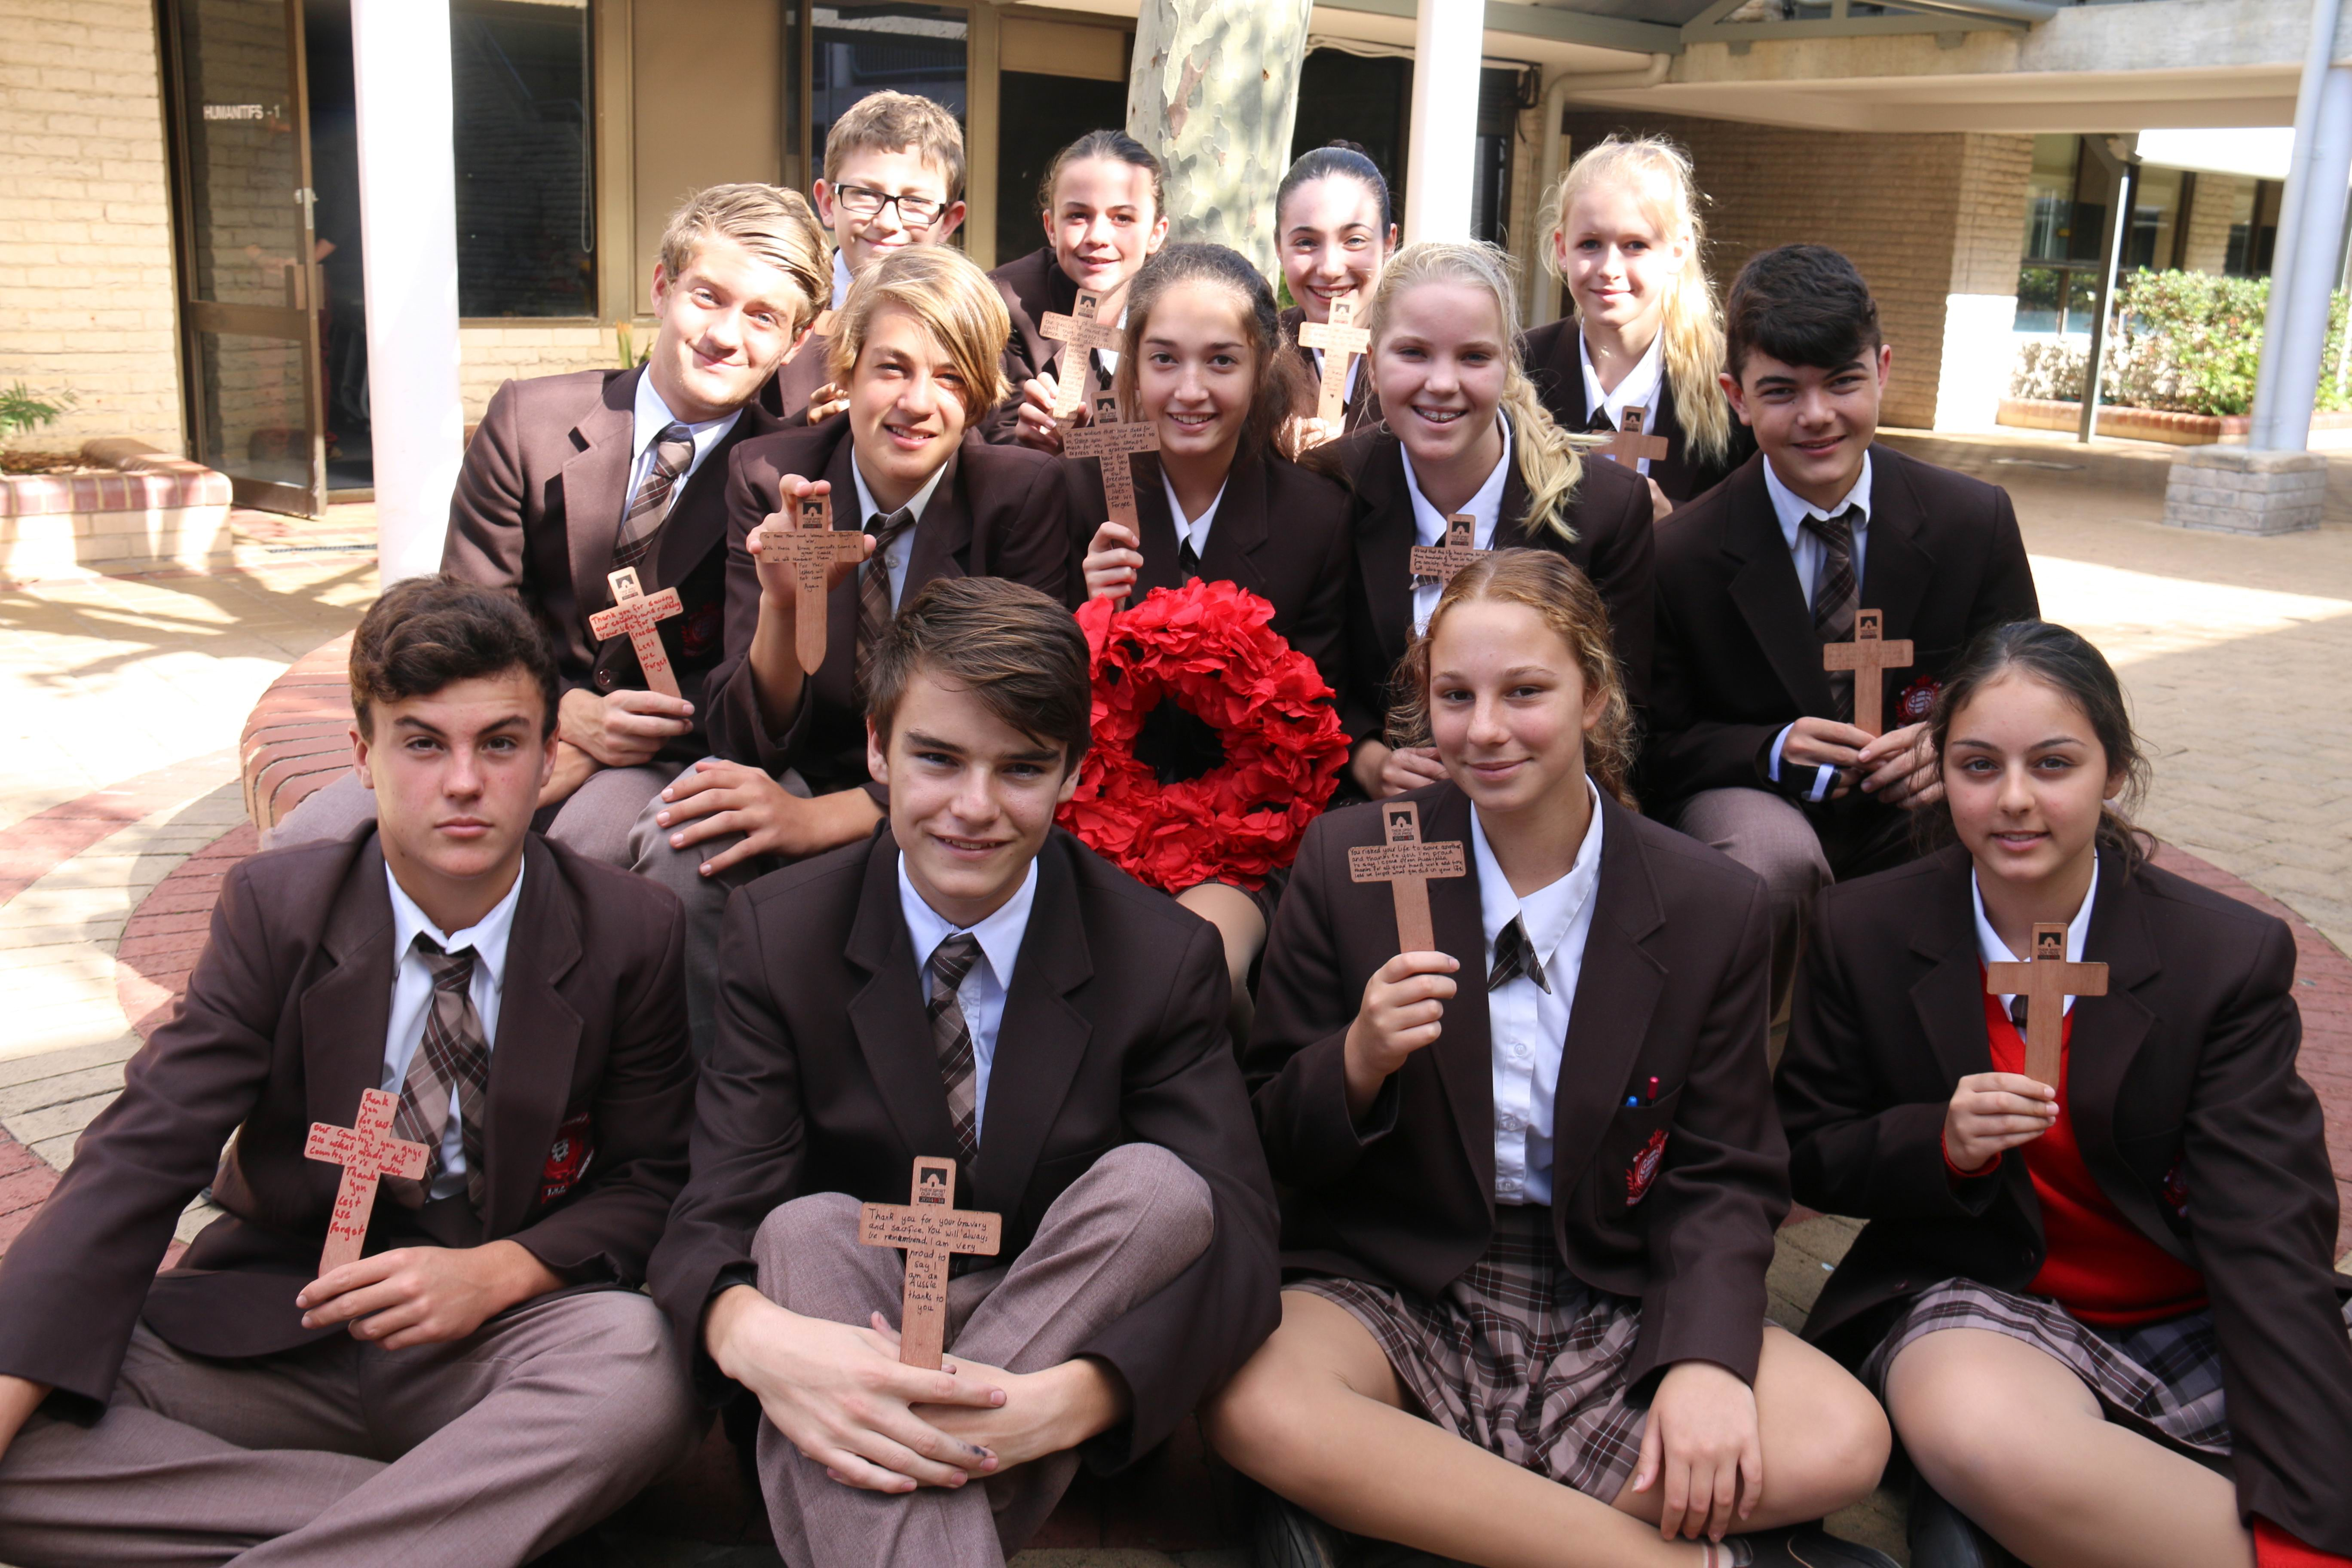 Lauren Larranaga-Trivess (back row, secnd from left) with her Year 9 history class in 2014.